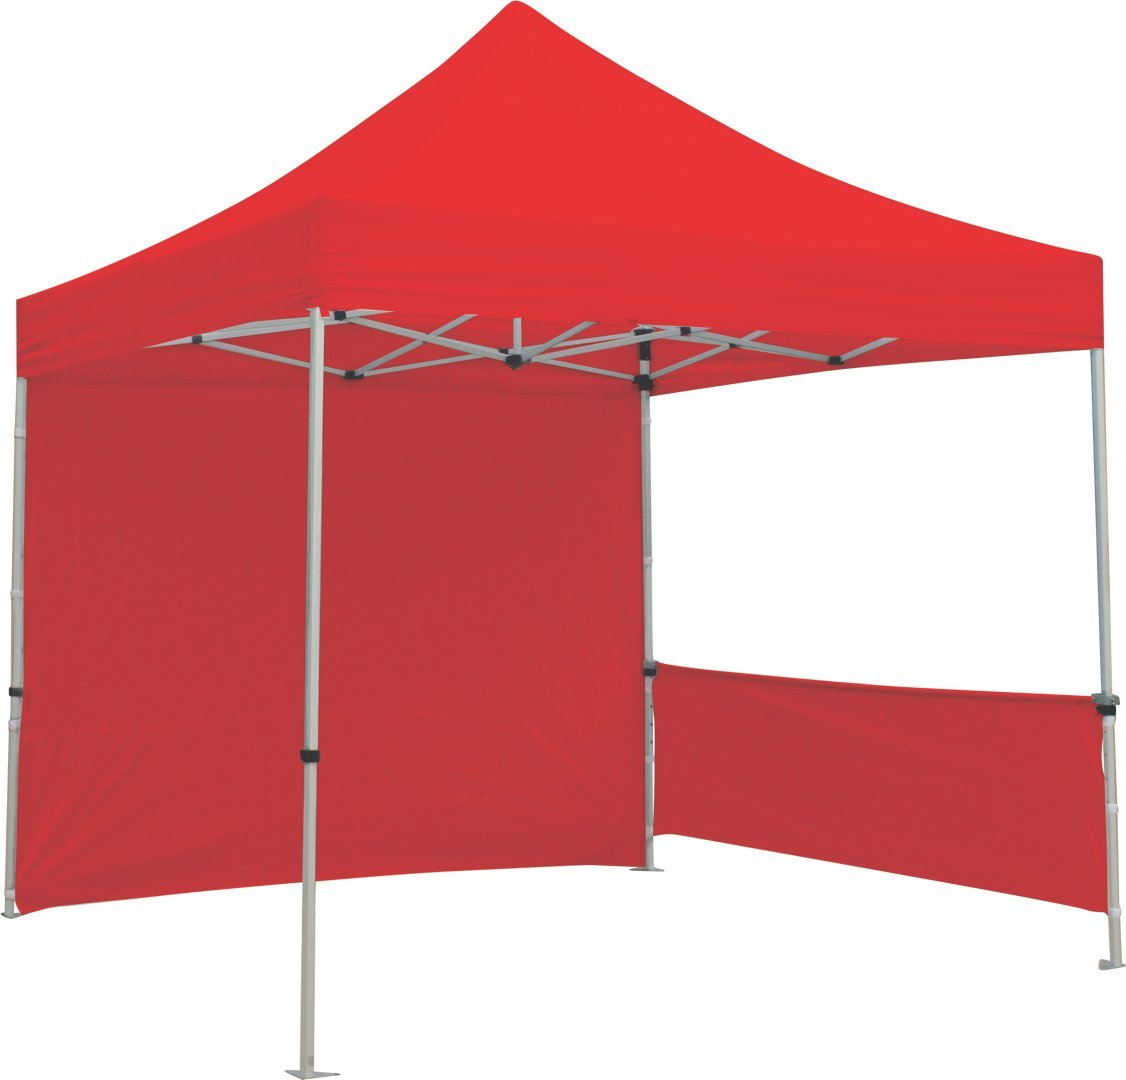 Exhibitor's Handbook TNT-3MX3M-HLF-K-BLU Zoom Popup Tent Half Wall Kit Hardware Only, 10', Blue 10'